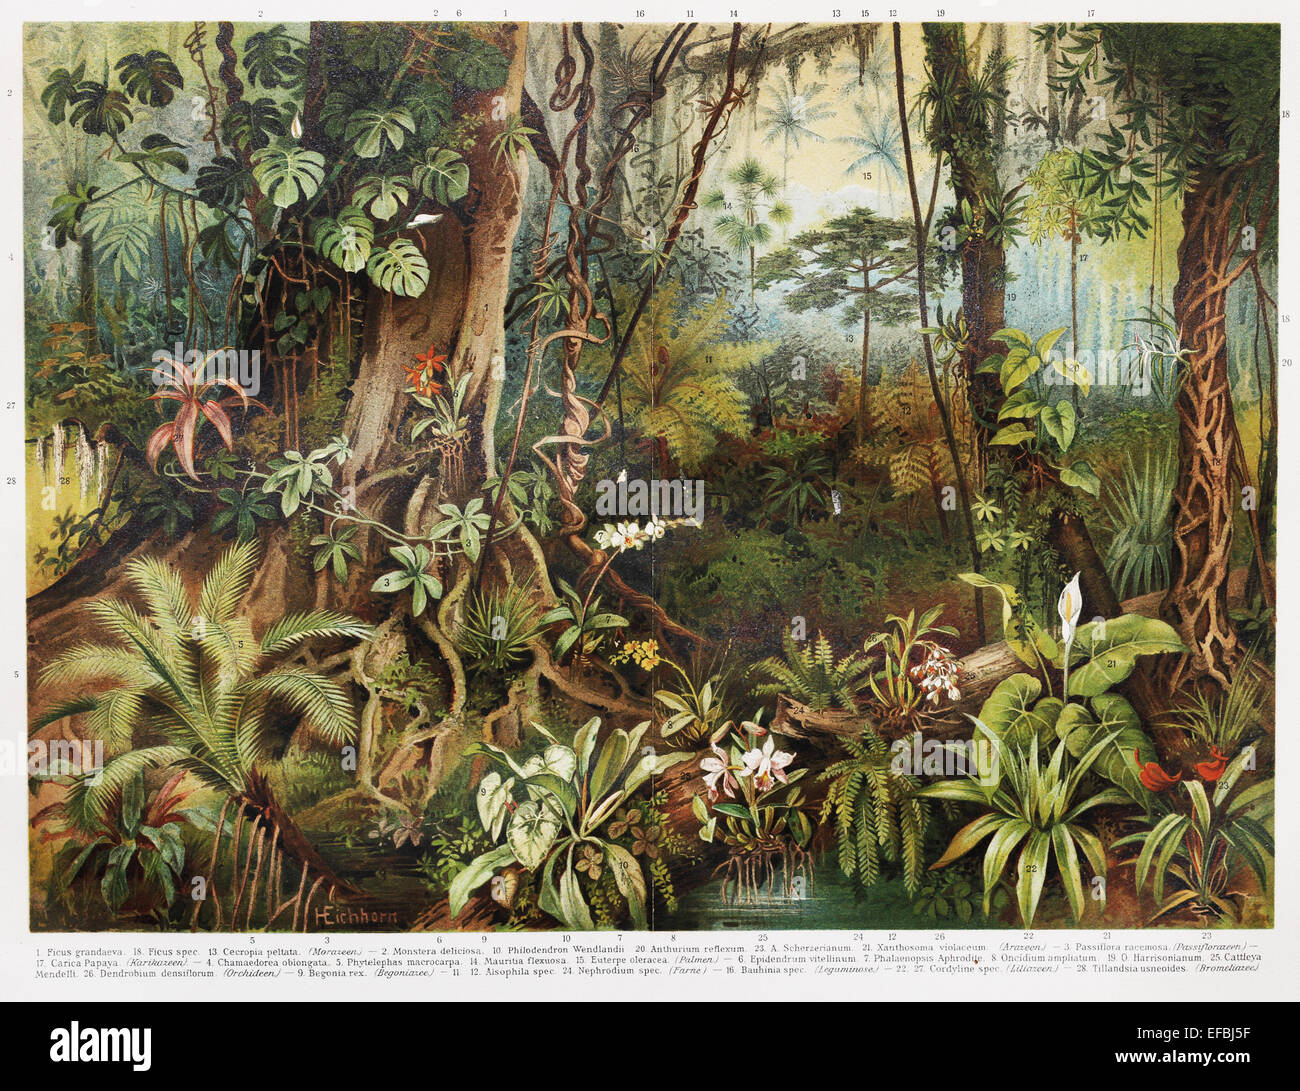 Vintage Drawing Of Tropical Forest Plants From The Beginning